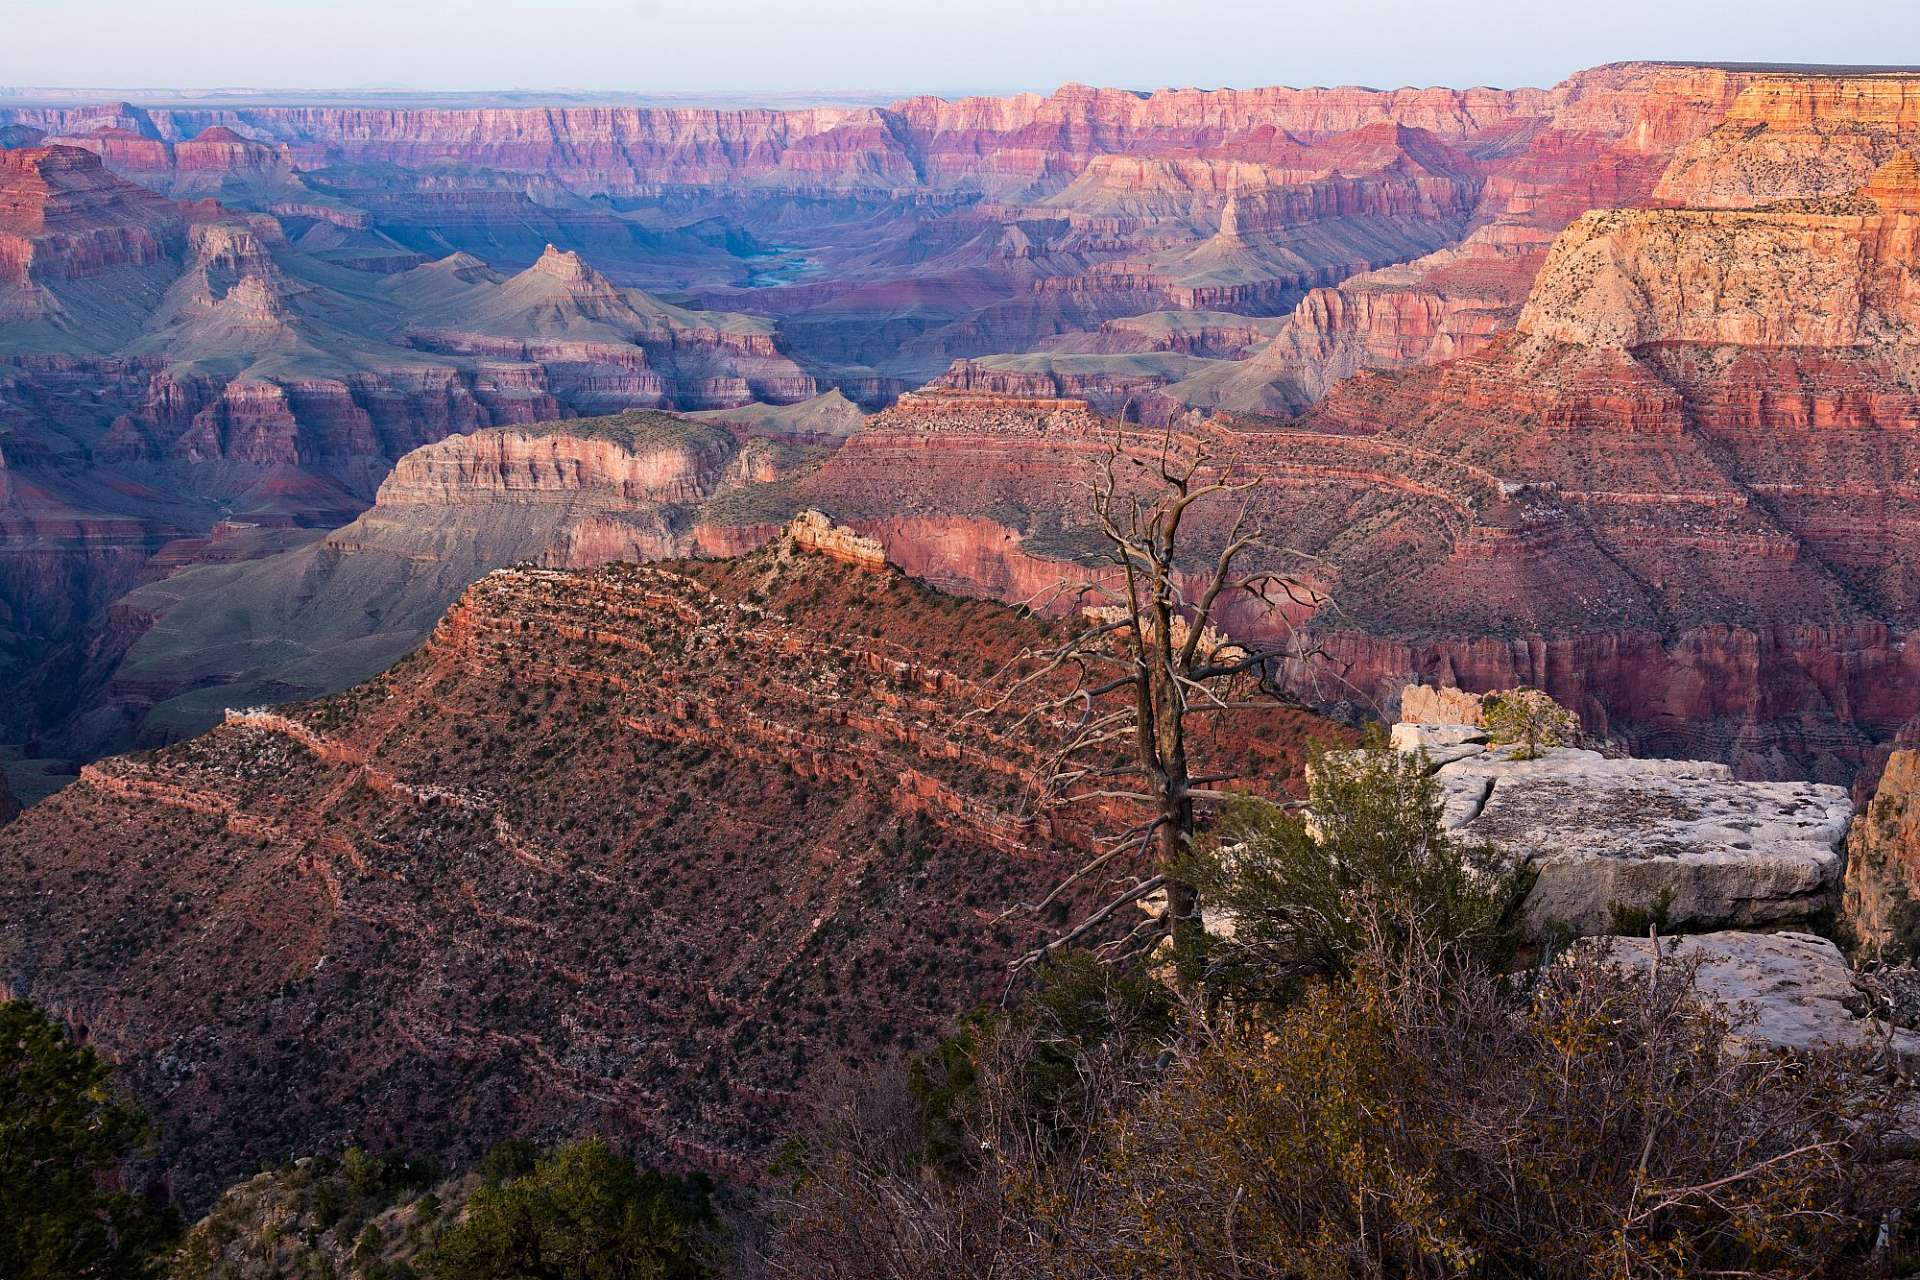 Der Südrand des Grand Canyon: South Rim